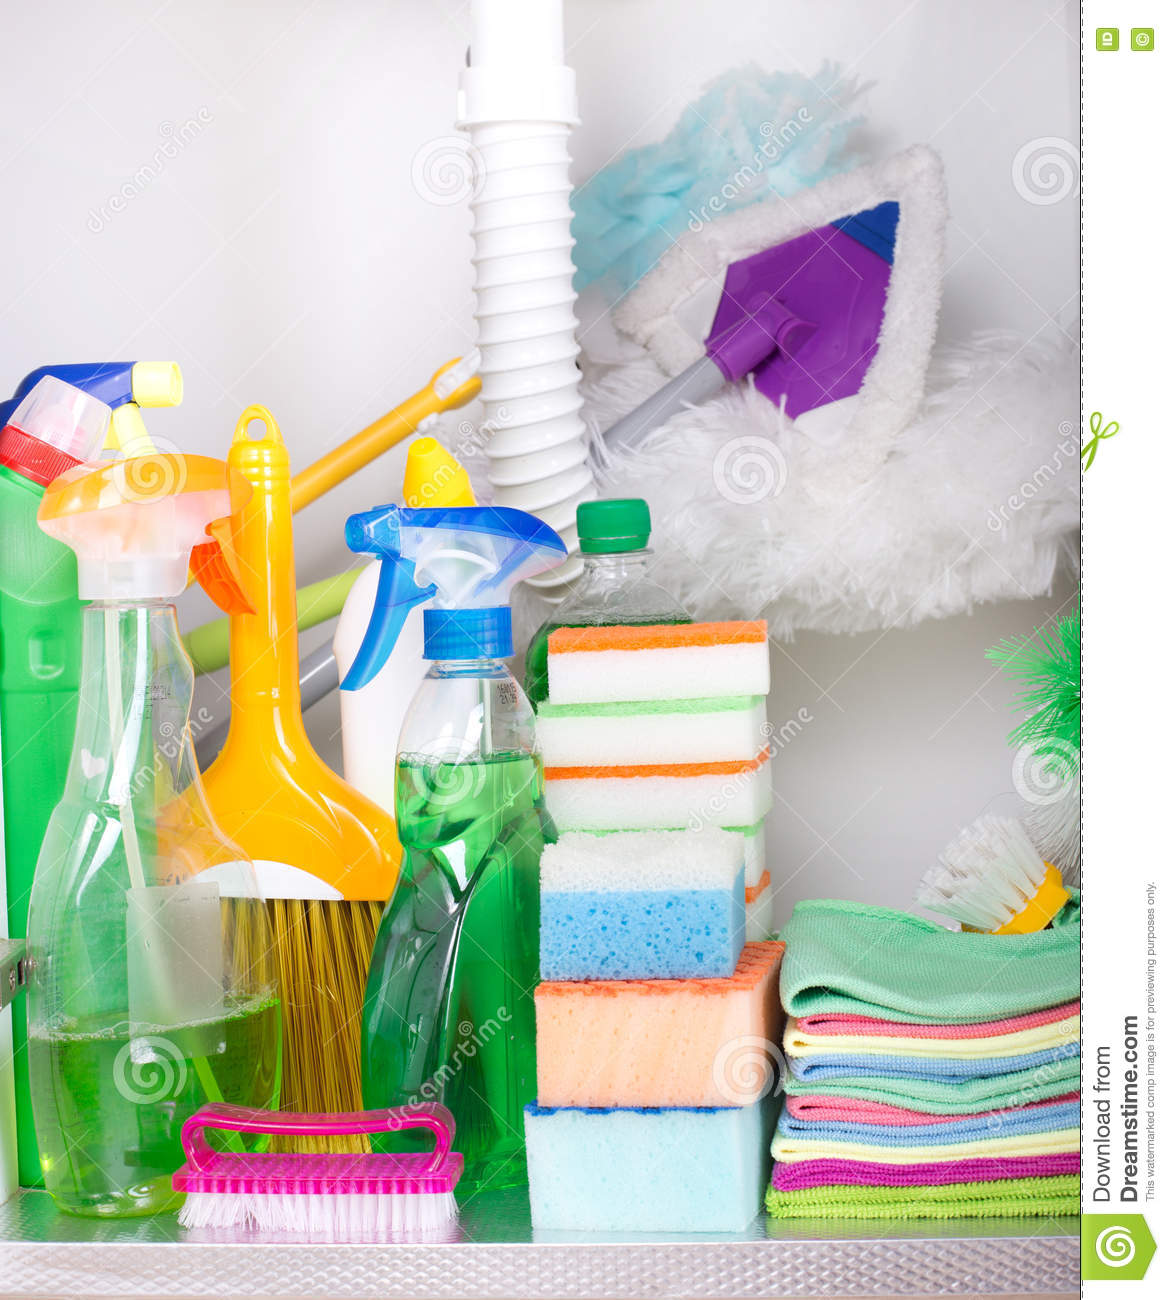 Cleaning Supplies In Kitchen Cabinet Stock Image Image Of Group